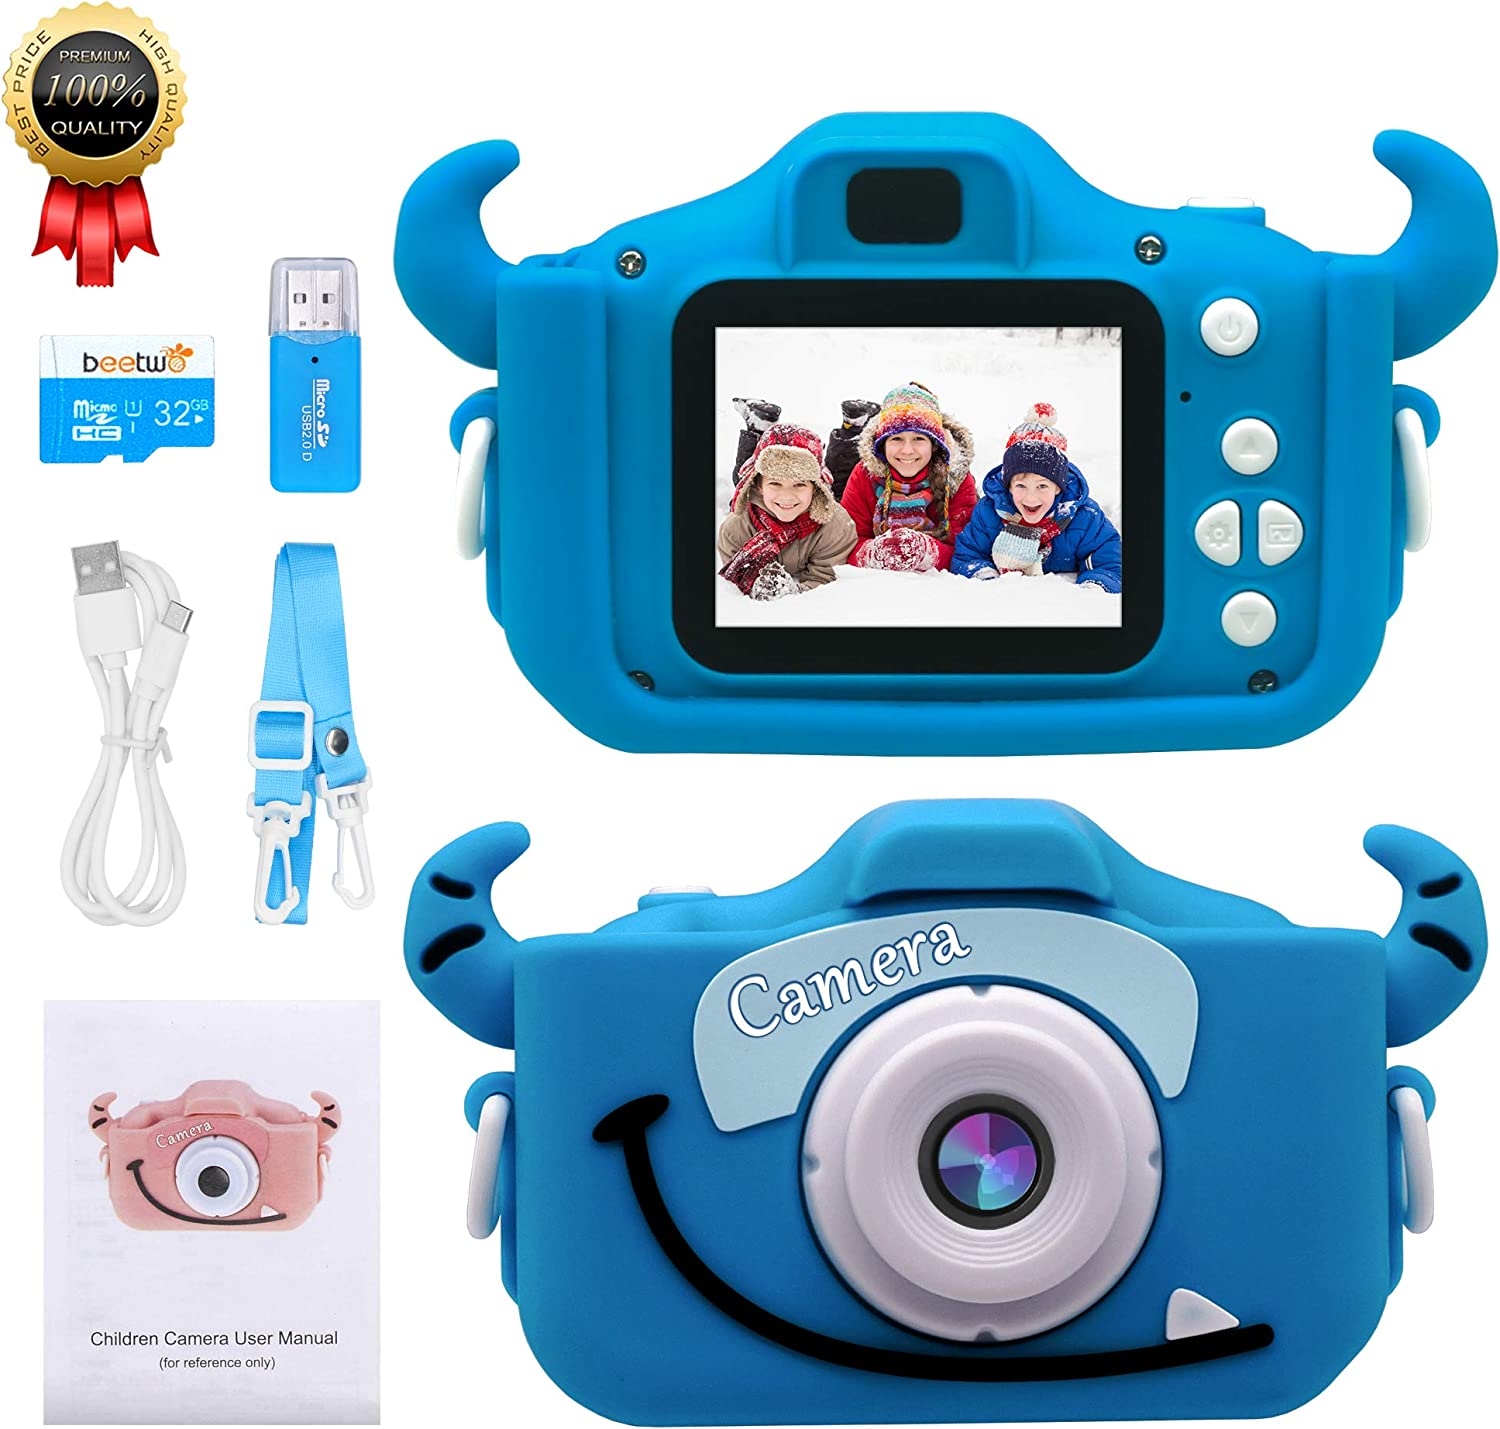 JAMSWALL Kids Camera,Digital Camera 2.0 inch for Children with 12MP HD 1080P Video Recorder /& 32GB SD Card Mini Dual camera SLR Supports Small Games USB Transfers Boys Girls Creative gifts